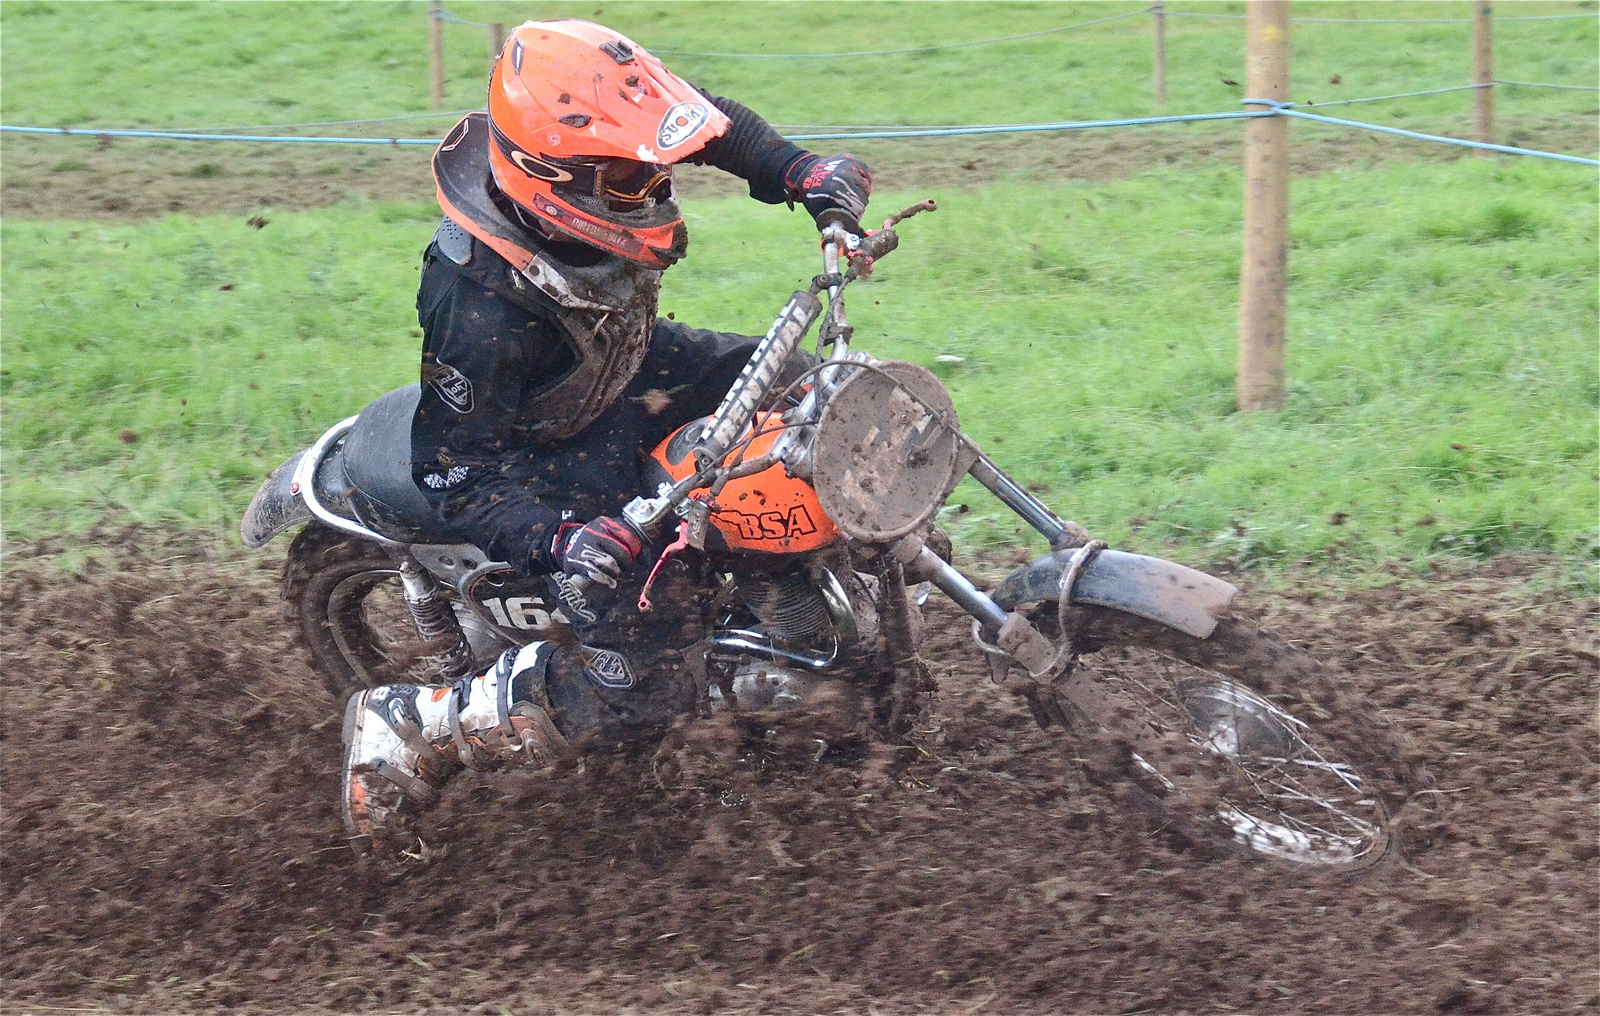 Llanthony Classic Scramble Photos September 2015 classicdirtbikerider.com..35